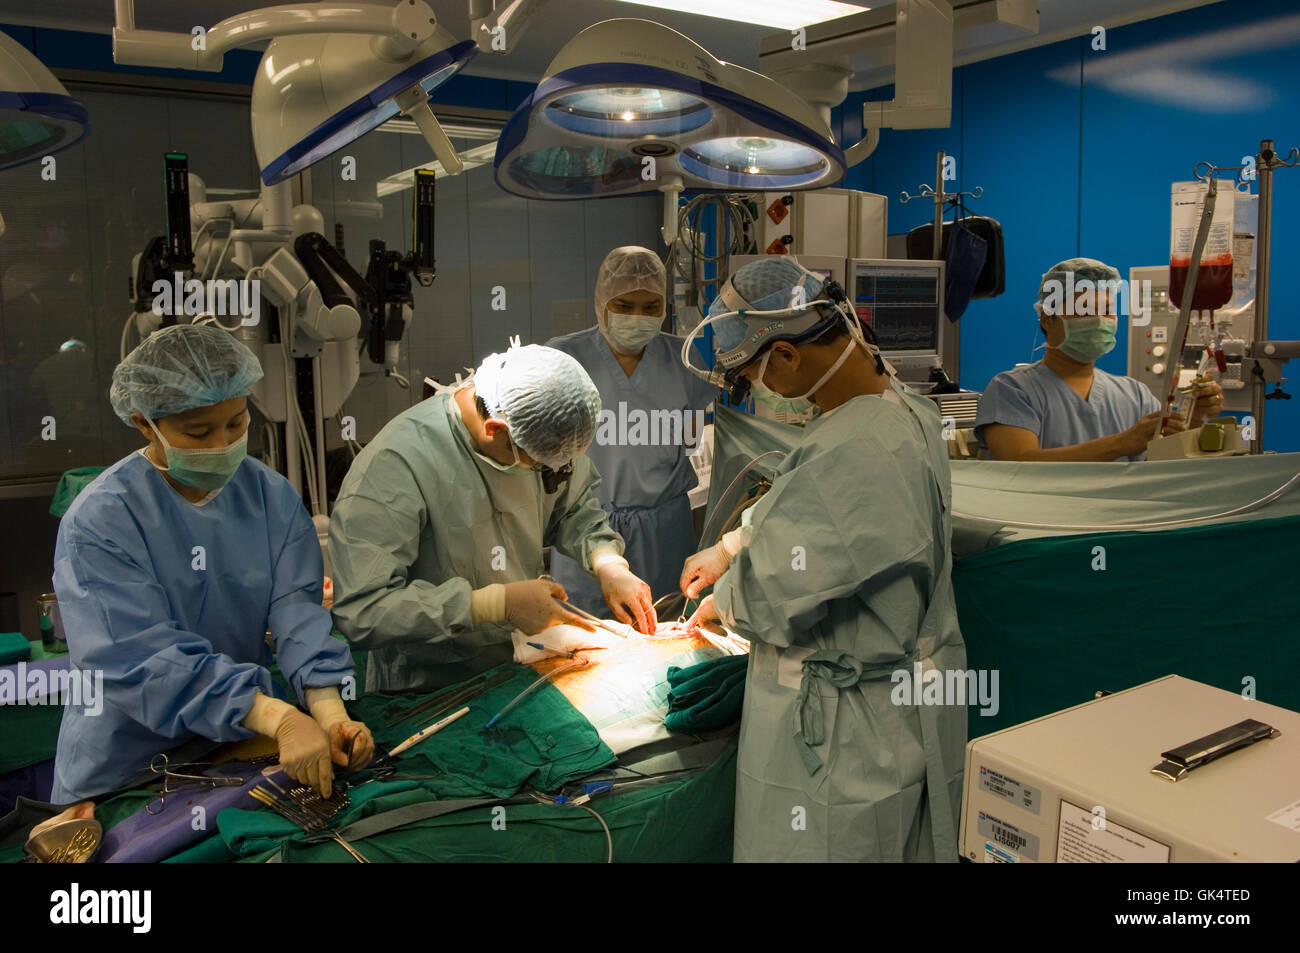 Clothing Outfit Surgical Stock Photos & Clothing Outfit